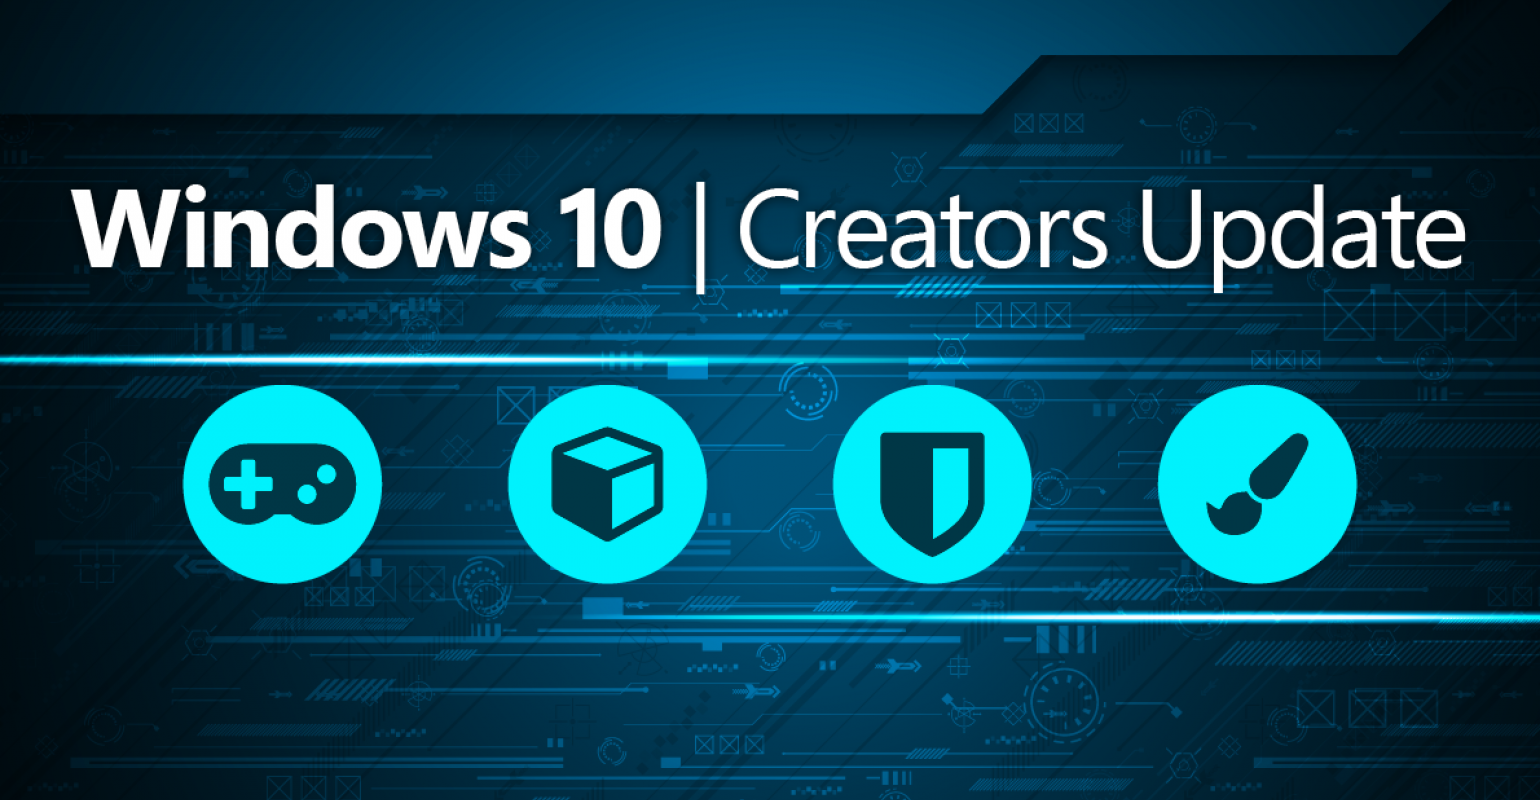 Windows 10 Creators Update Now Available for Download from